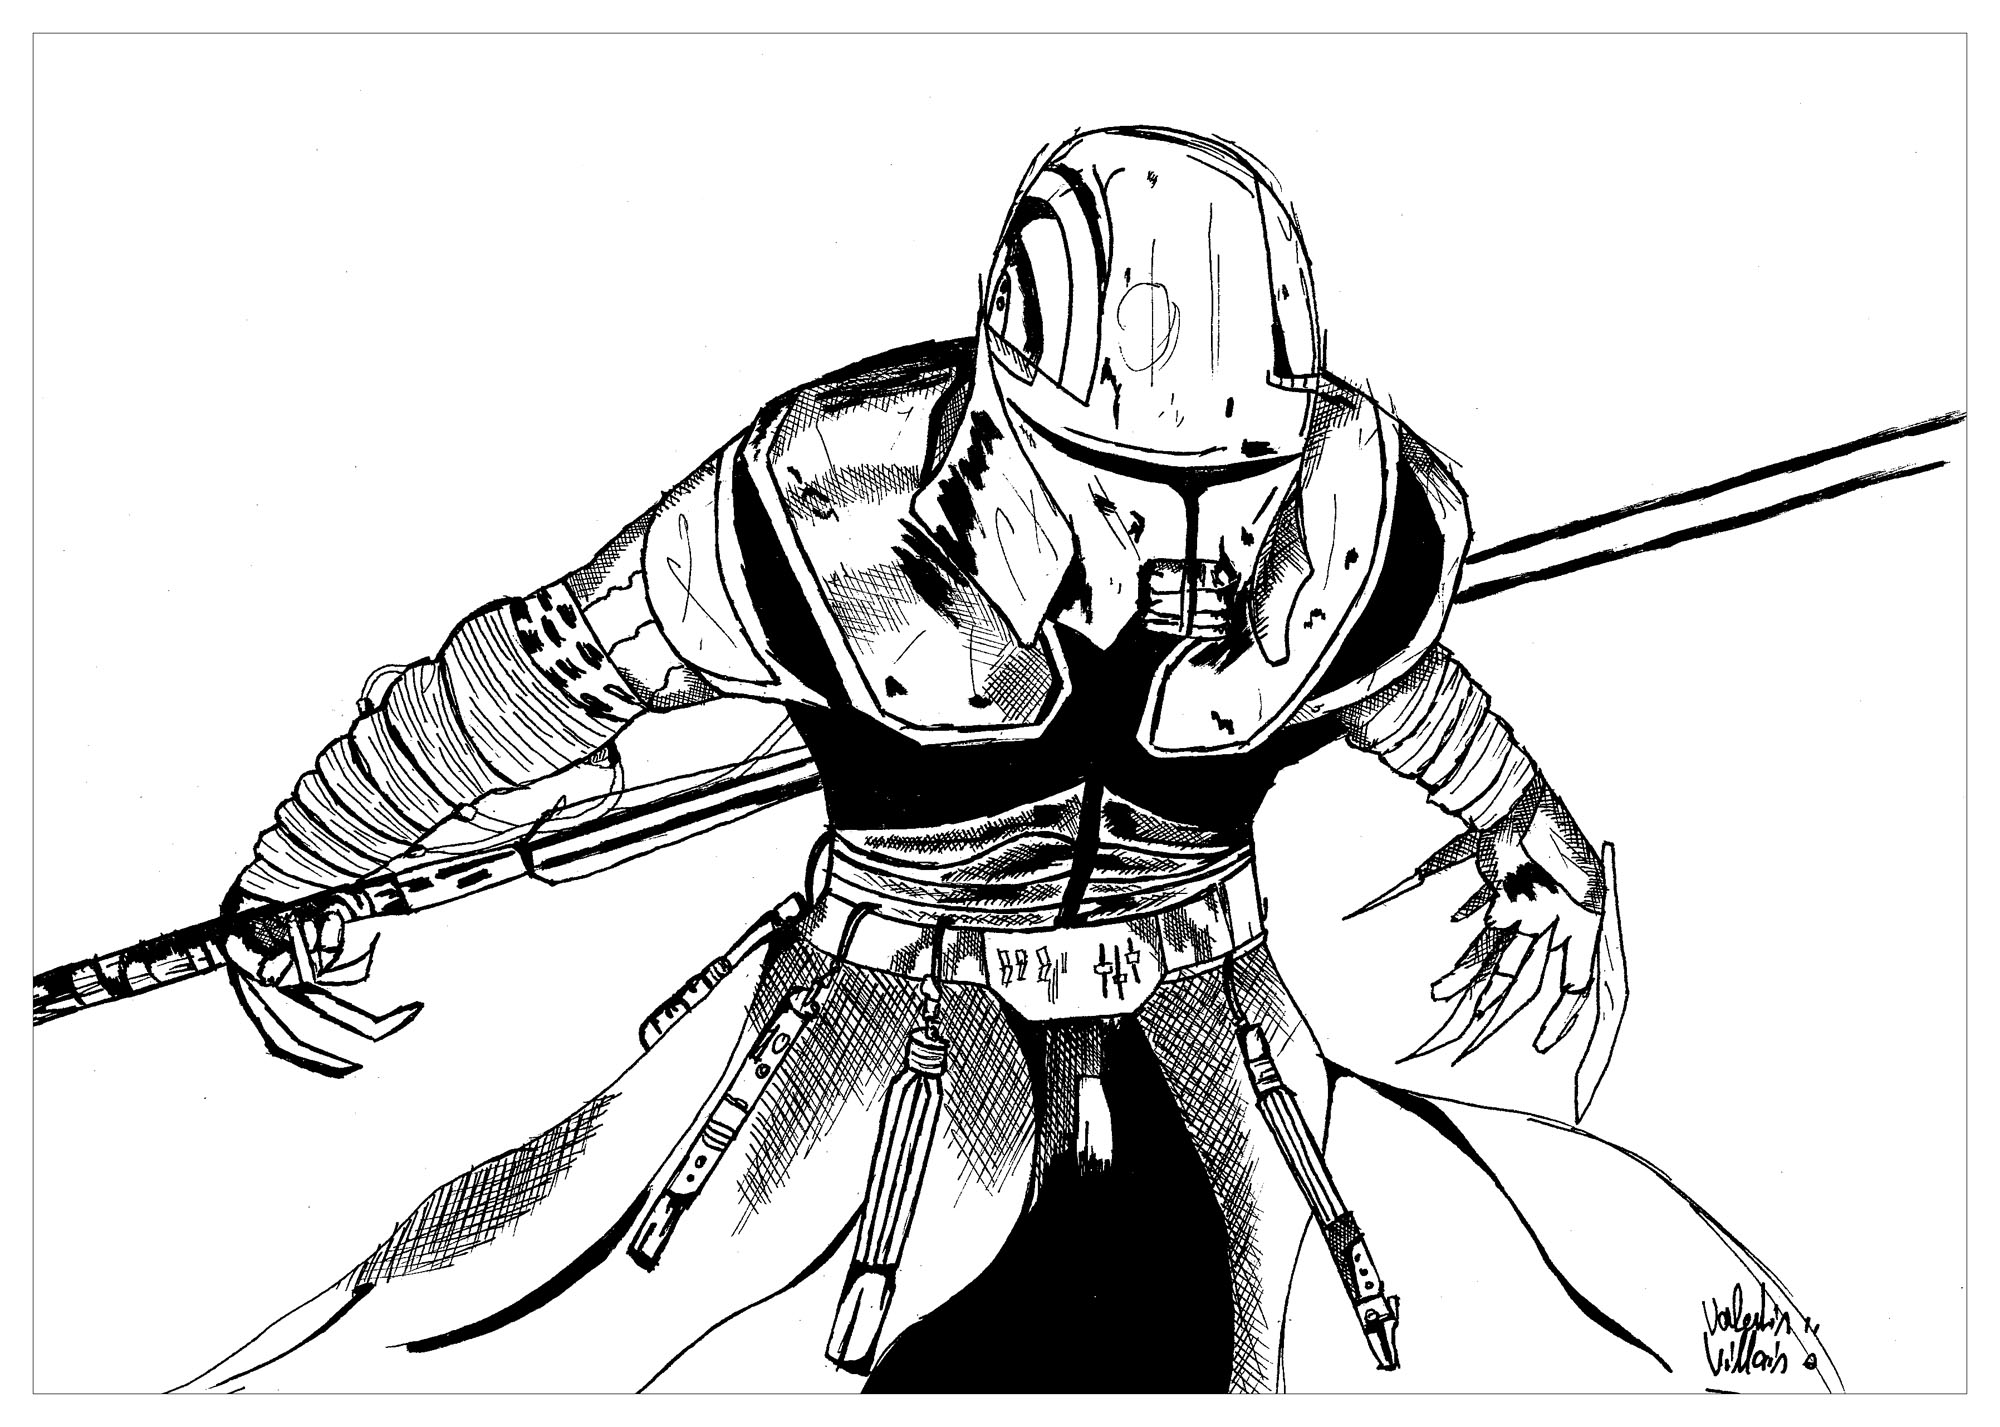 Coloring page of a Sith inspired by the famous Star Wars Saga